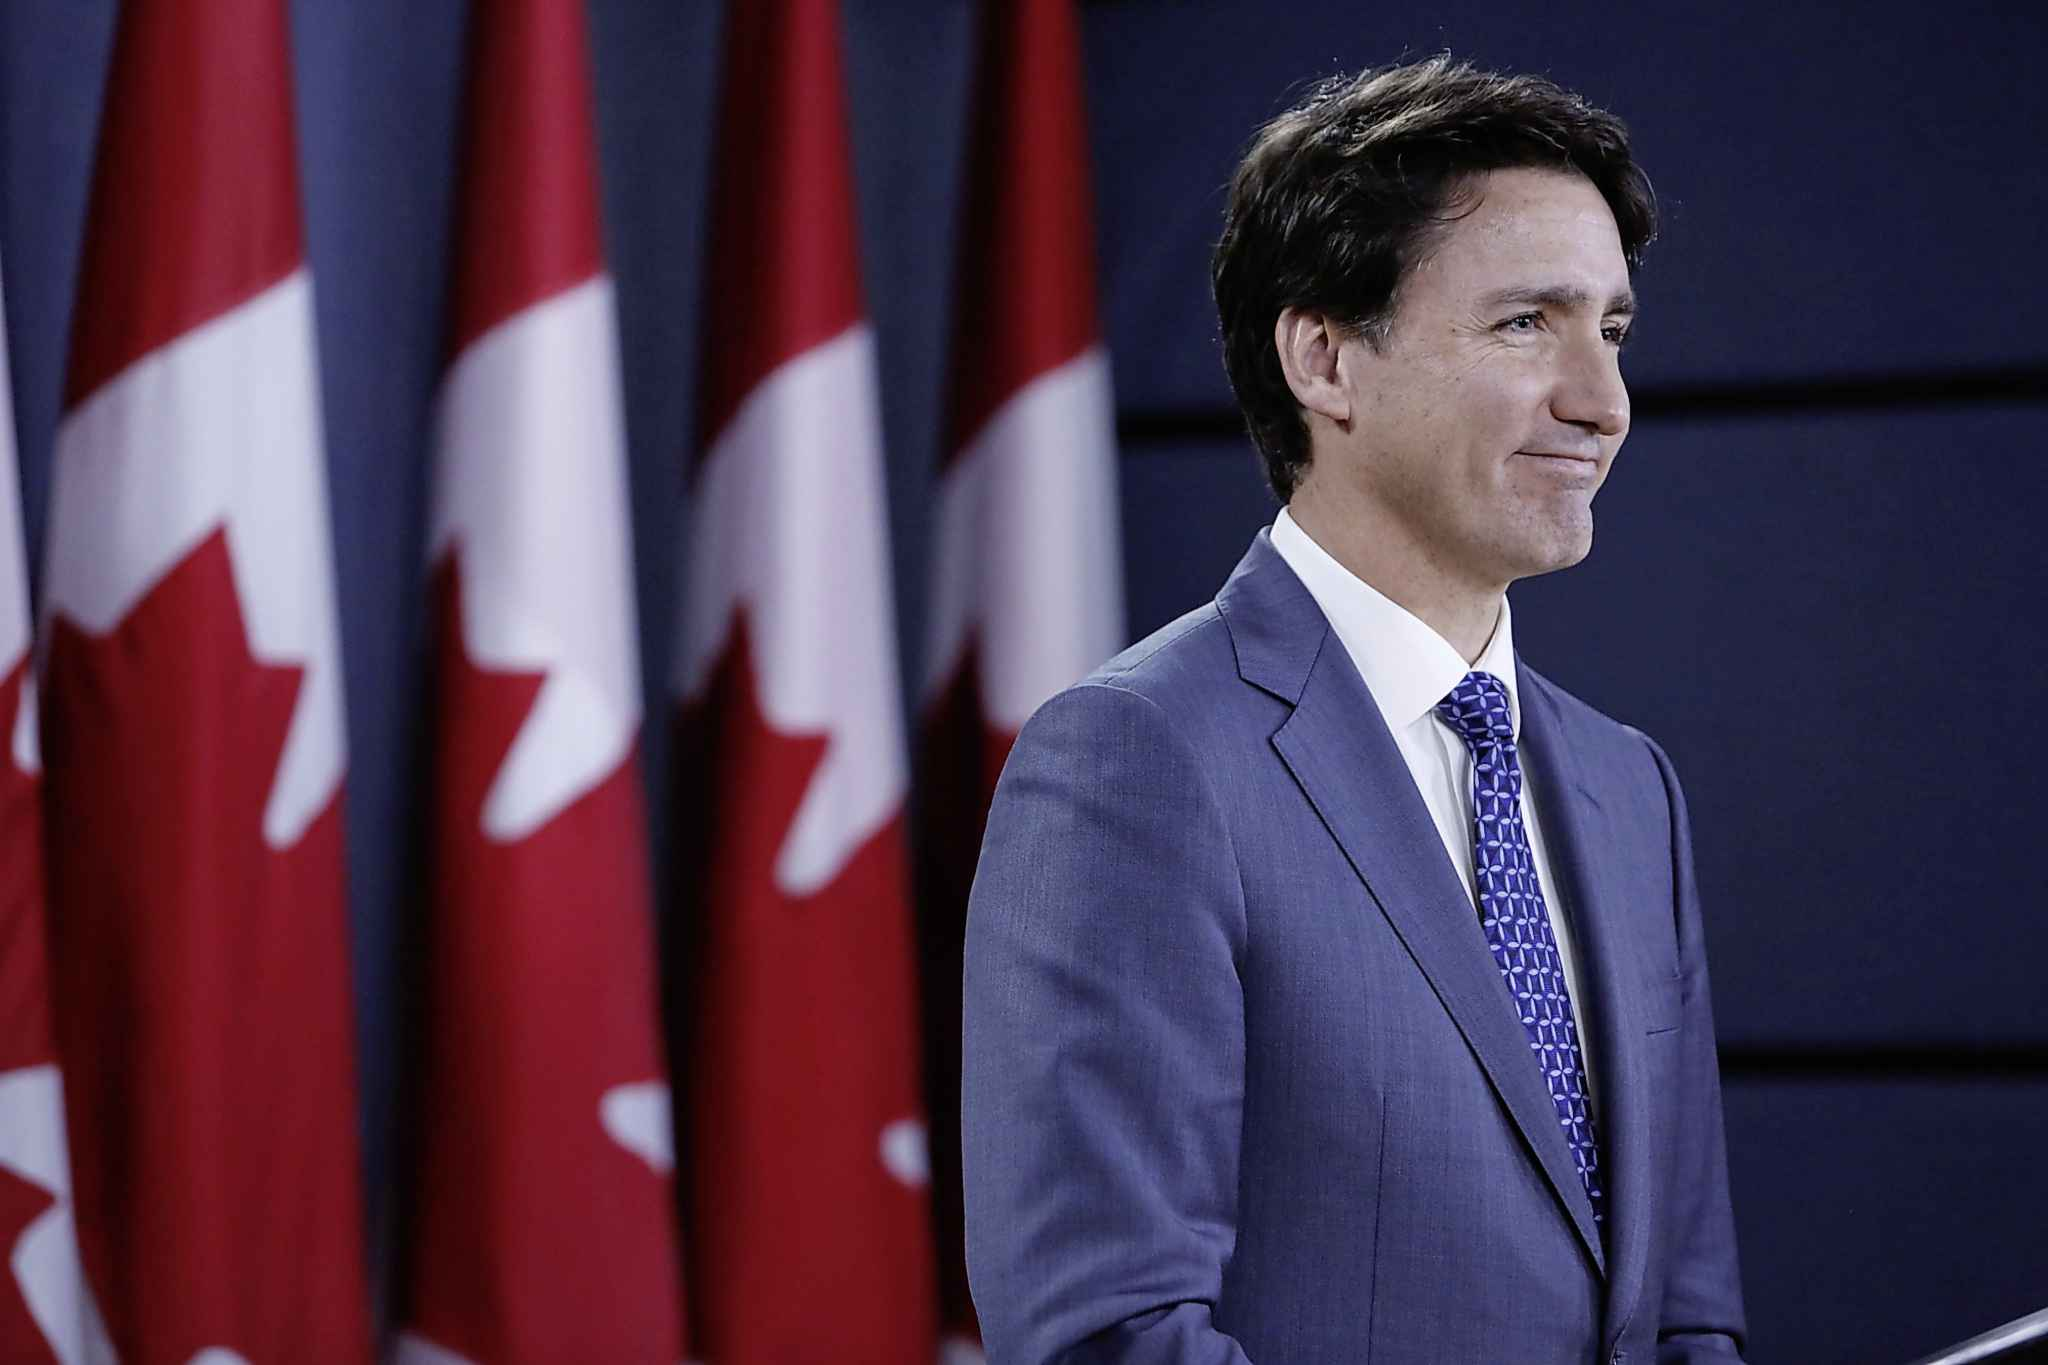 Prime Minister Justin Trudeau said he agrees with the need for compensation, but the deadline to come up with a plan is not enough time. (David Kawai / Bloomberg files)